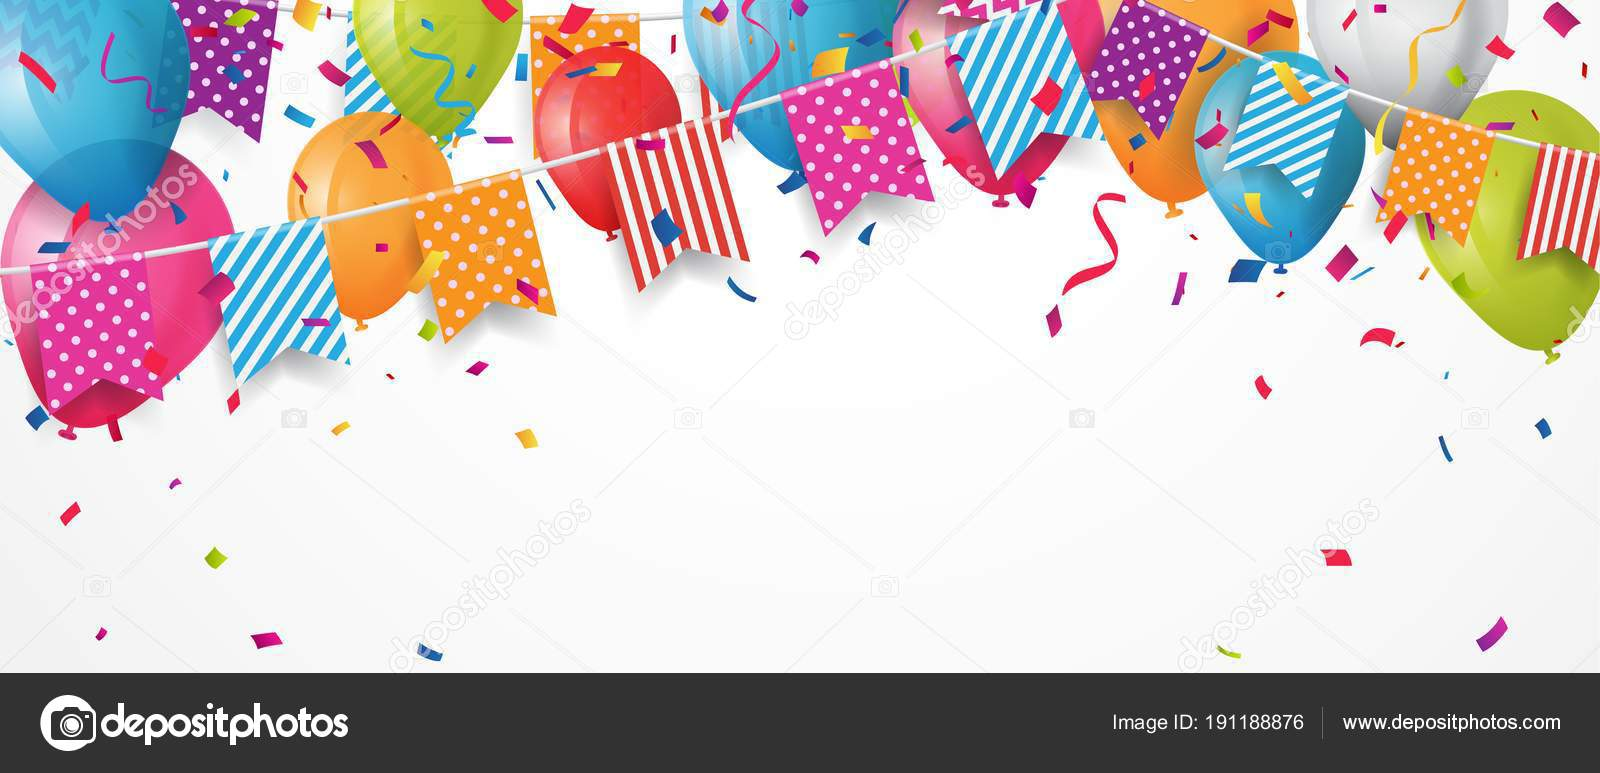 birthday card background design hd ; depositphotos_191188876-stock-illustration-colorful-vector-illustration-birthday-card